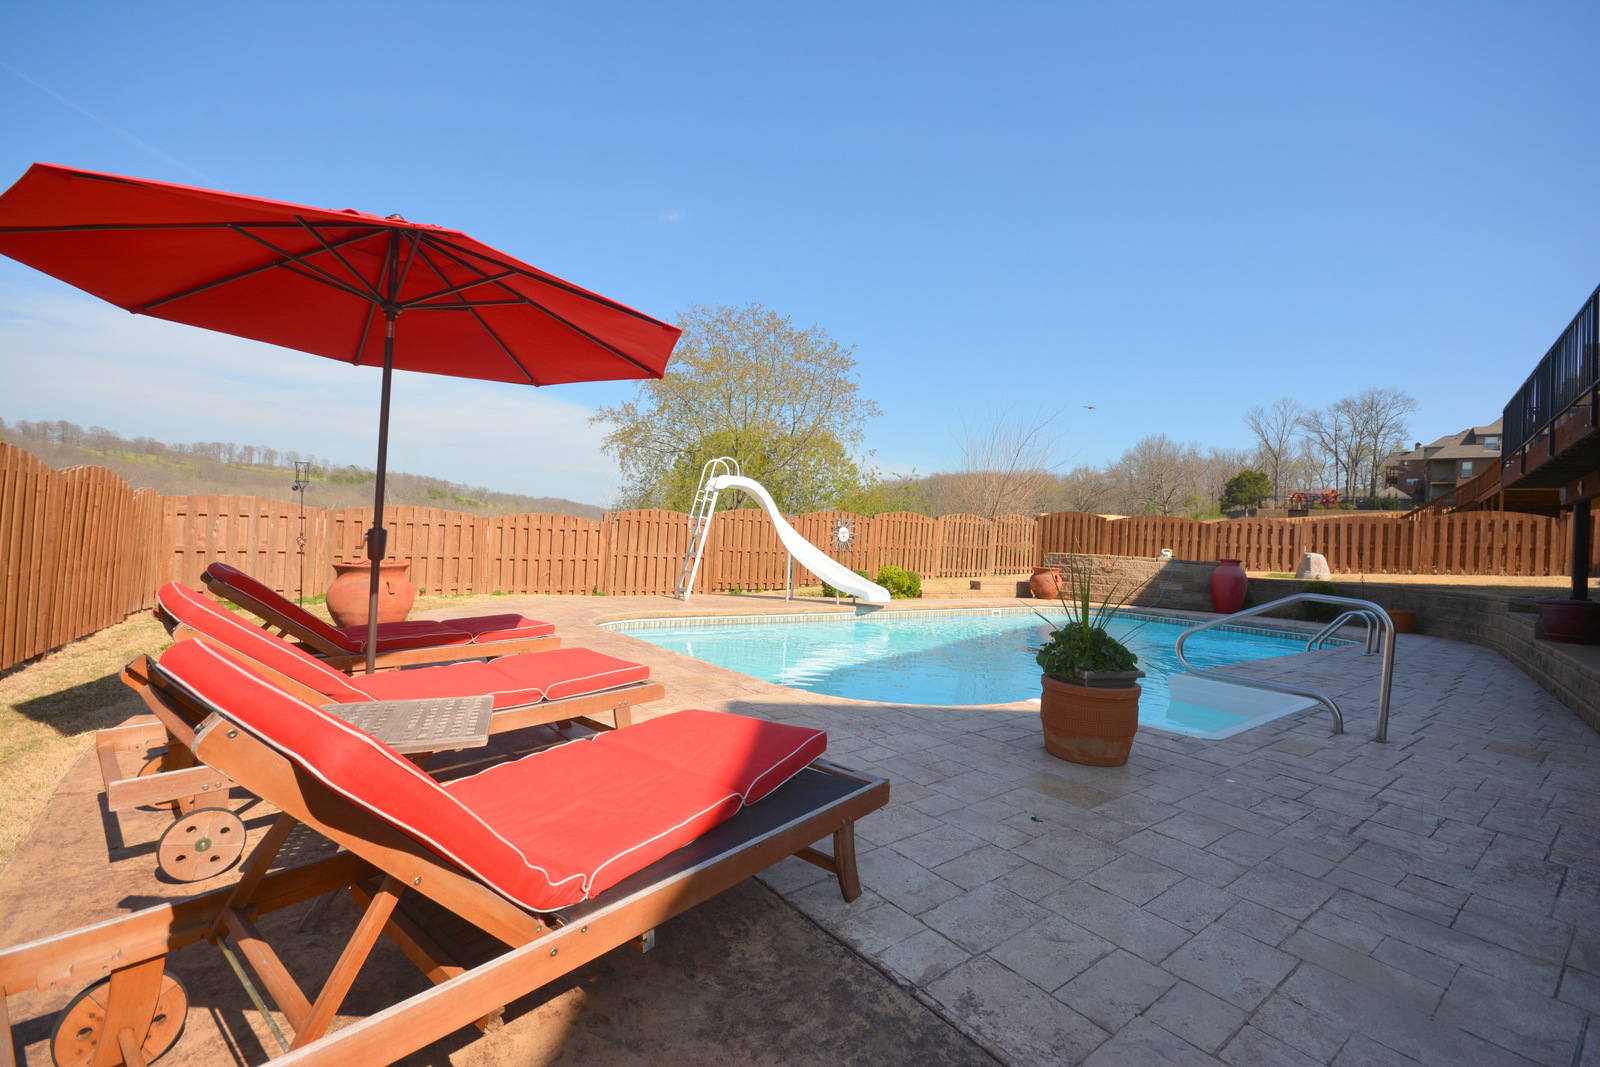 Creekstone home for sale in bentonville with pool basement for Bentonville pool